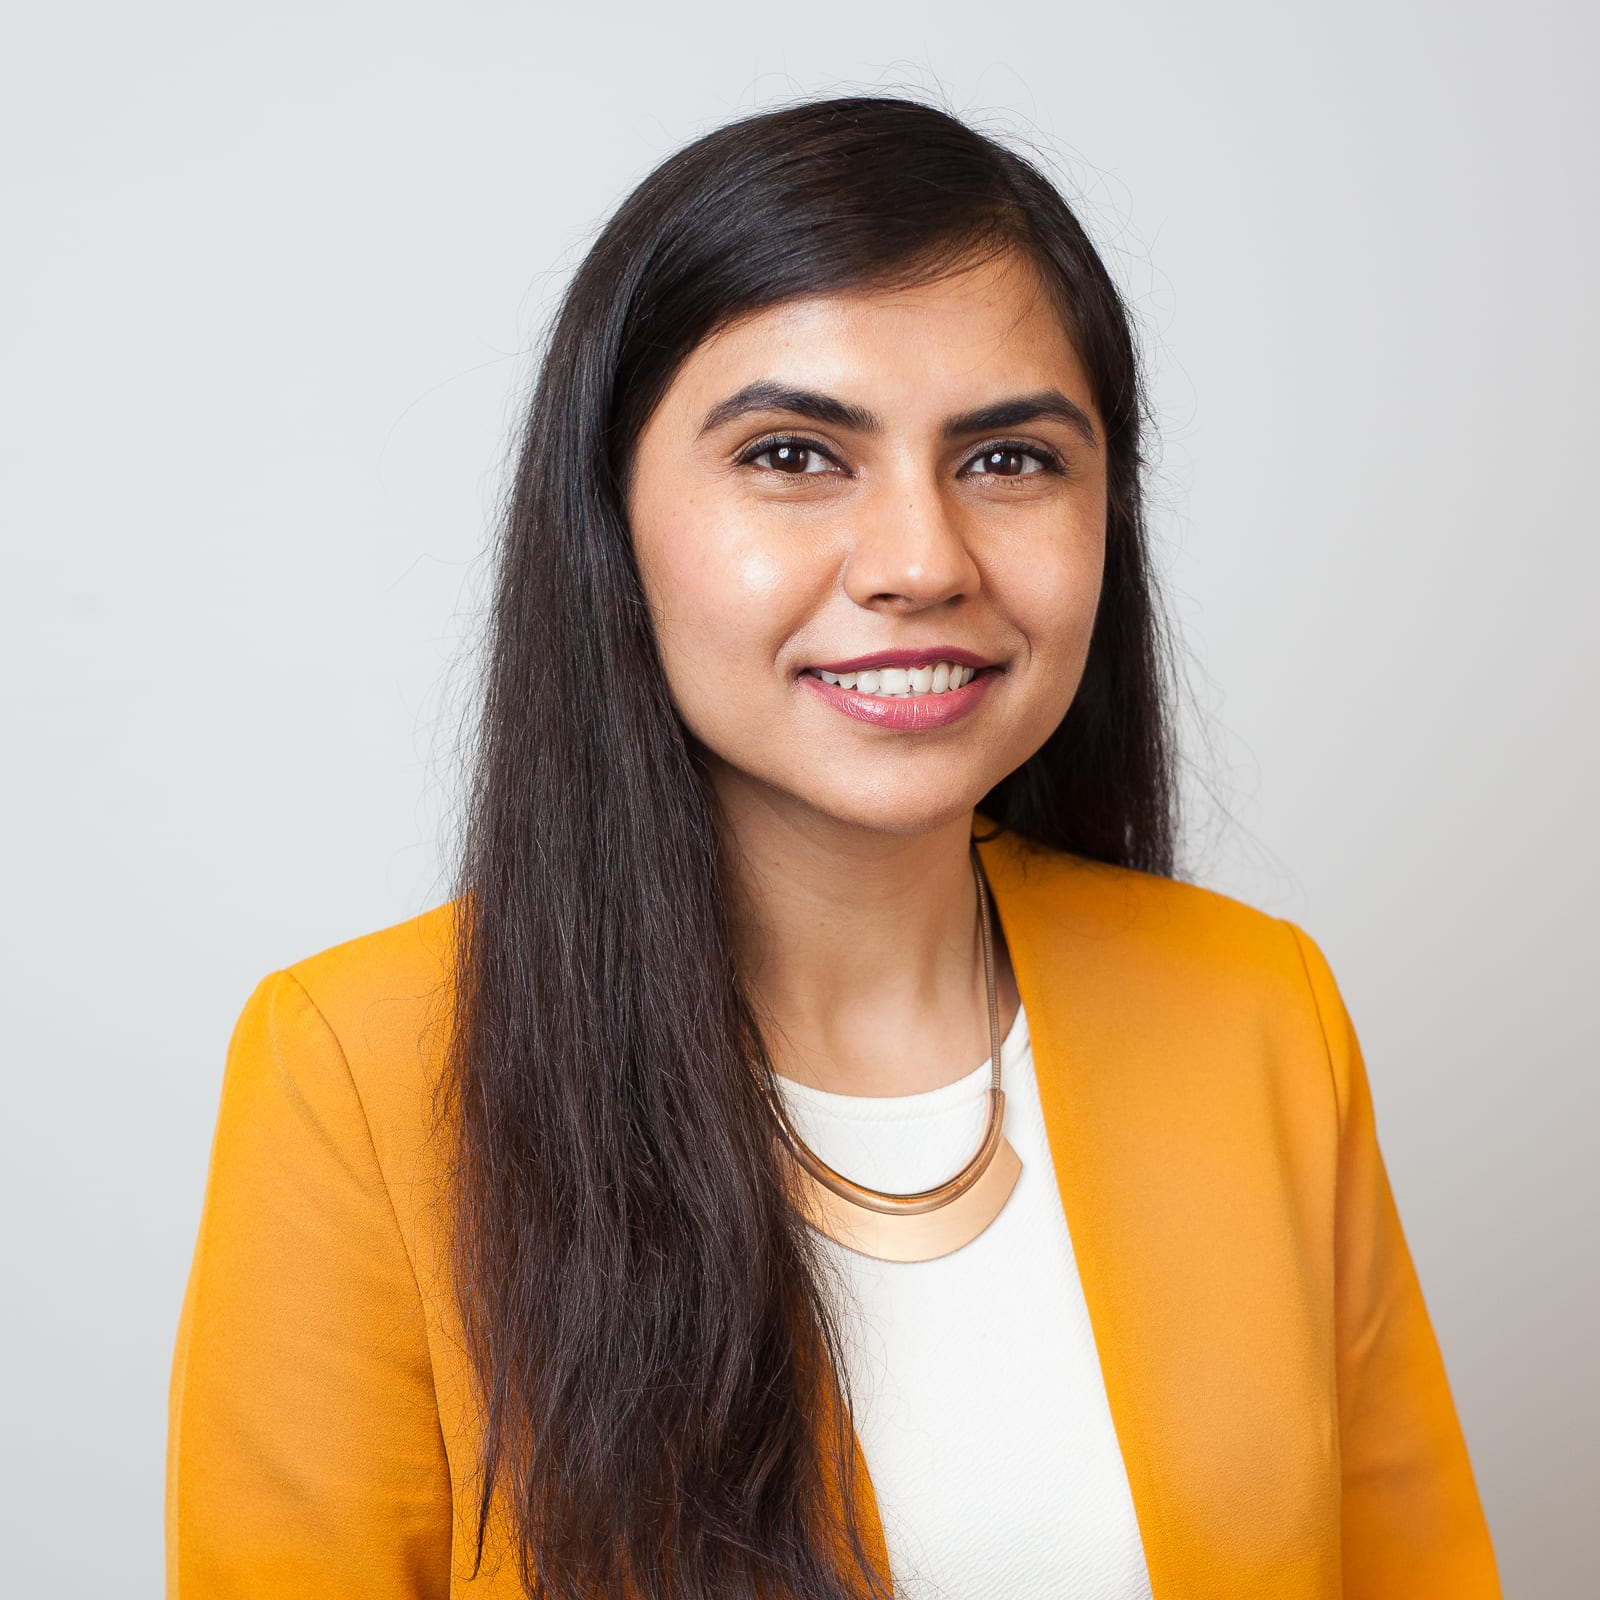 Gurminder Kaur, Data Scientist